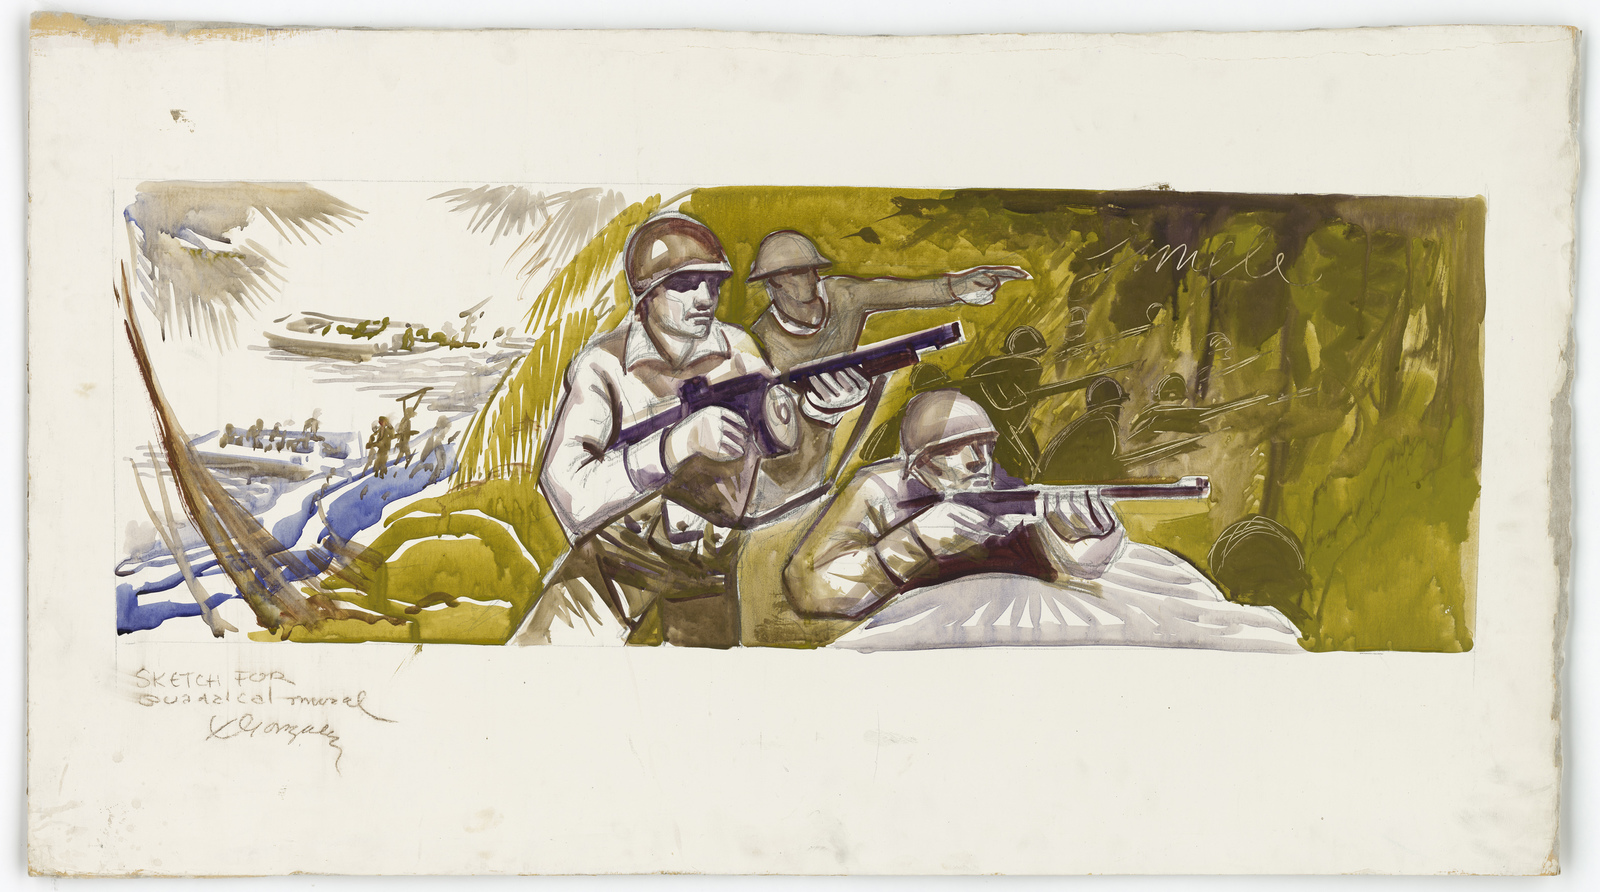 [Soldiers fighting their way up a beach] Sketched for the Guadalcanal mural [X. Gonzalez]